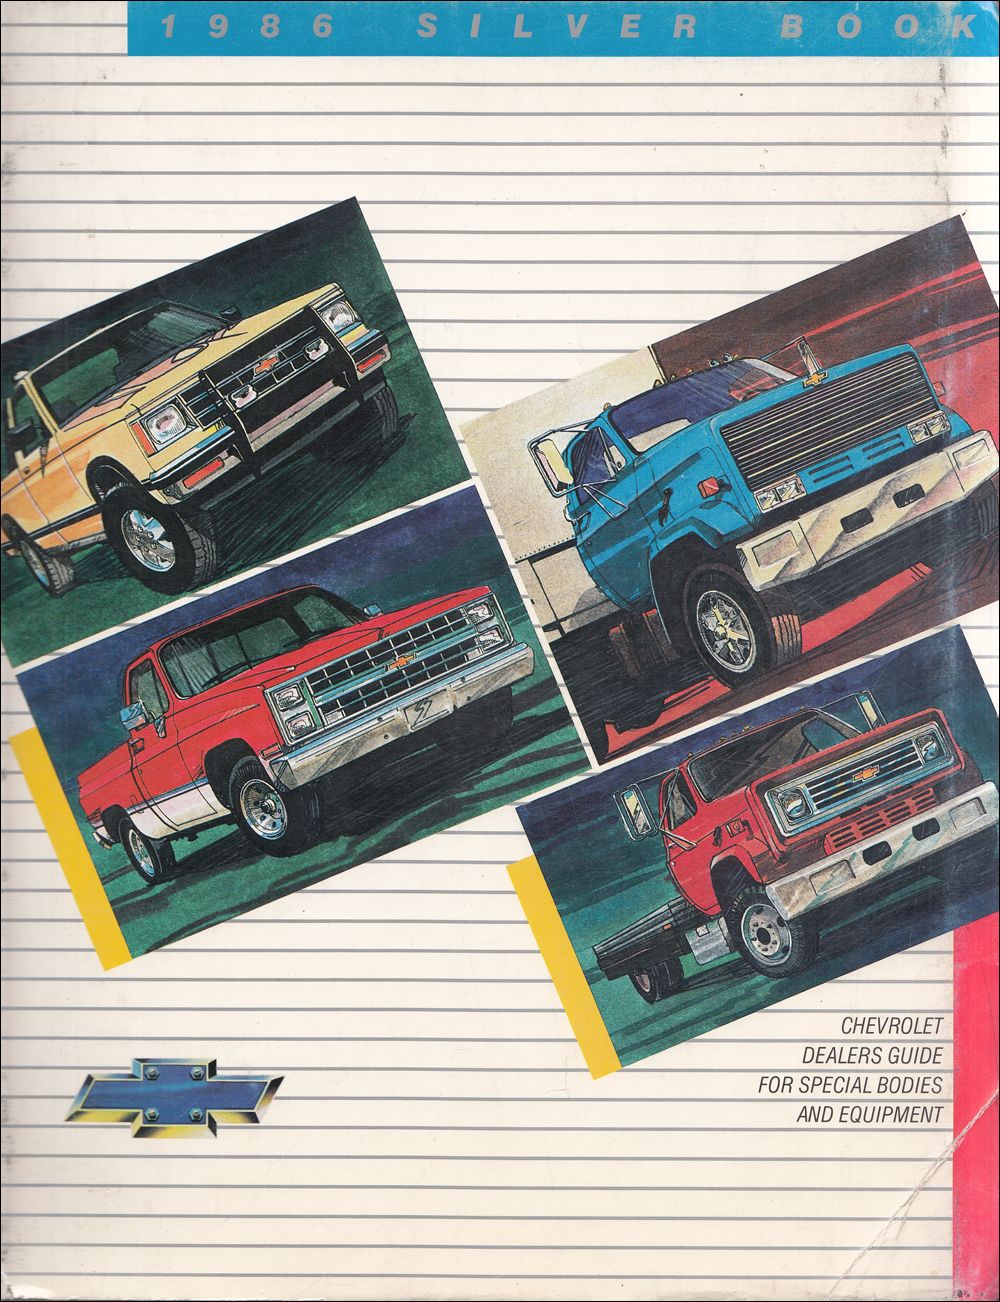 1986 Chevrolet Truck Silver Book Special Equipment Dealer Album inc Van Conversions